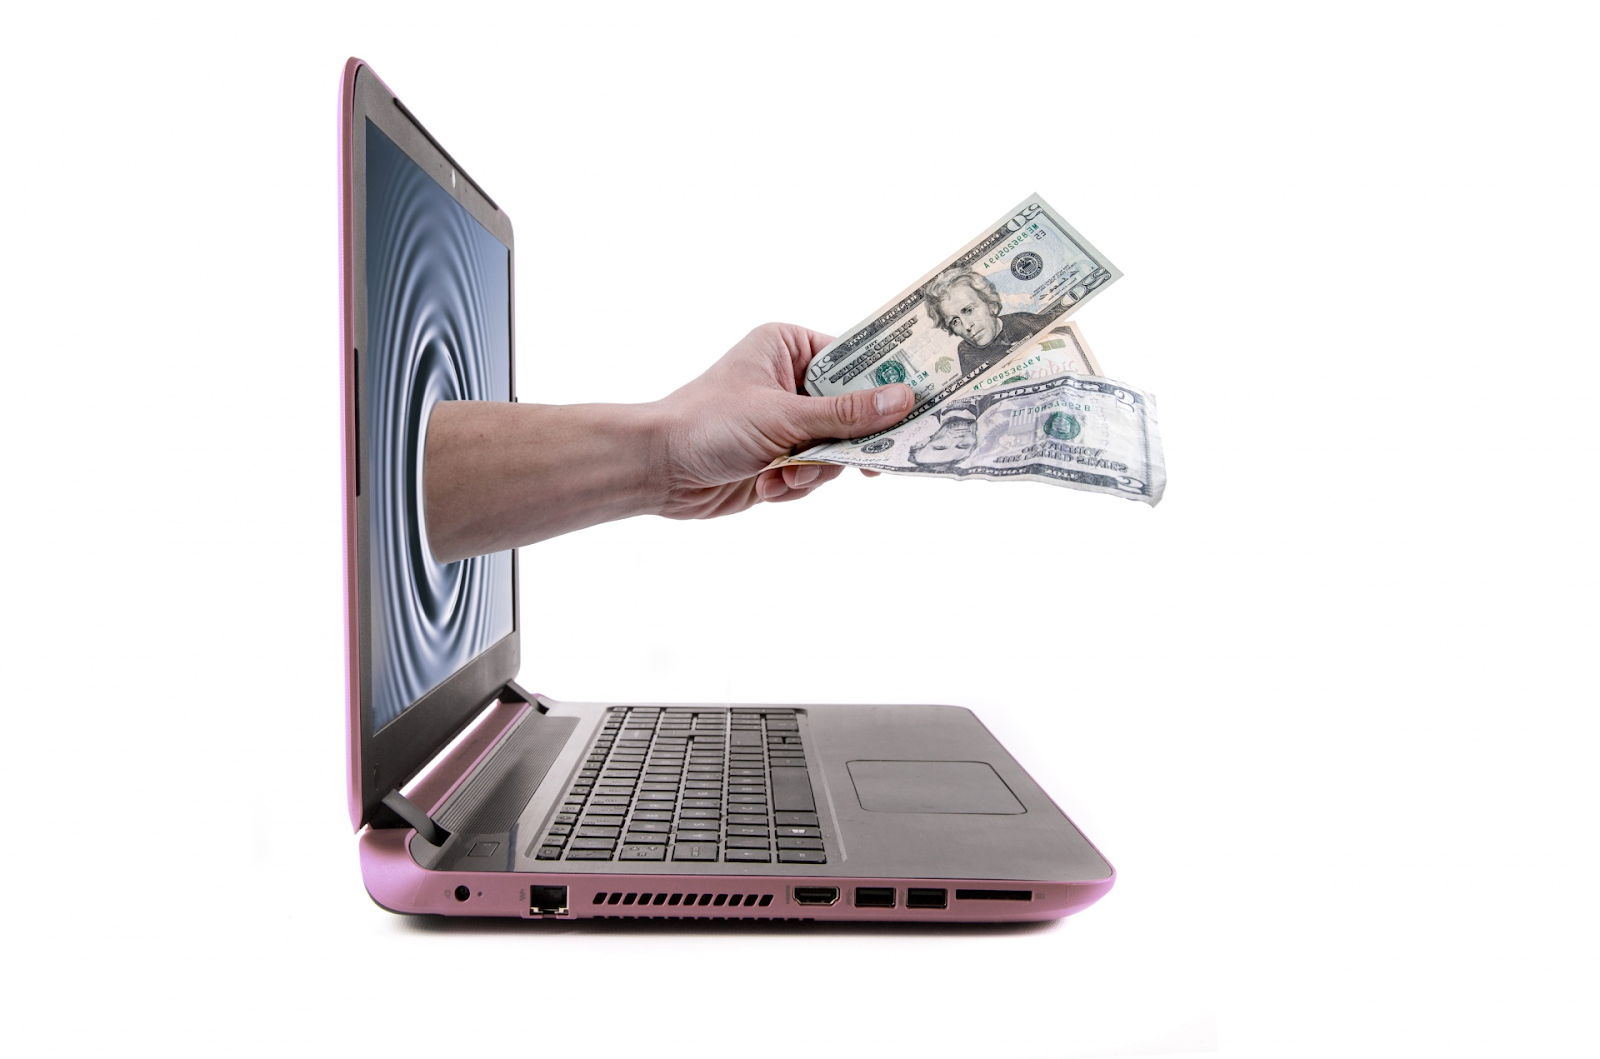 Laptop Paydays: How To Use Your Computer To Make Money